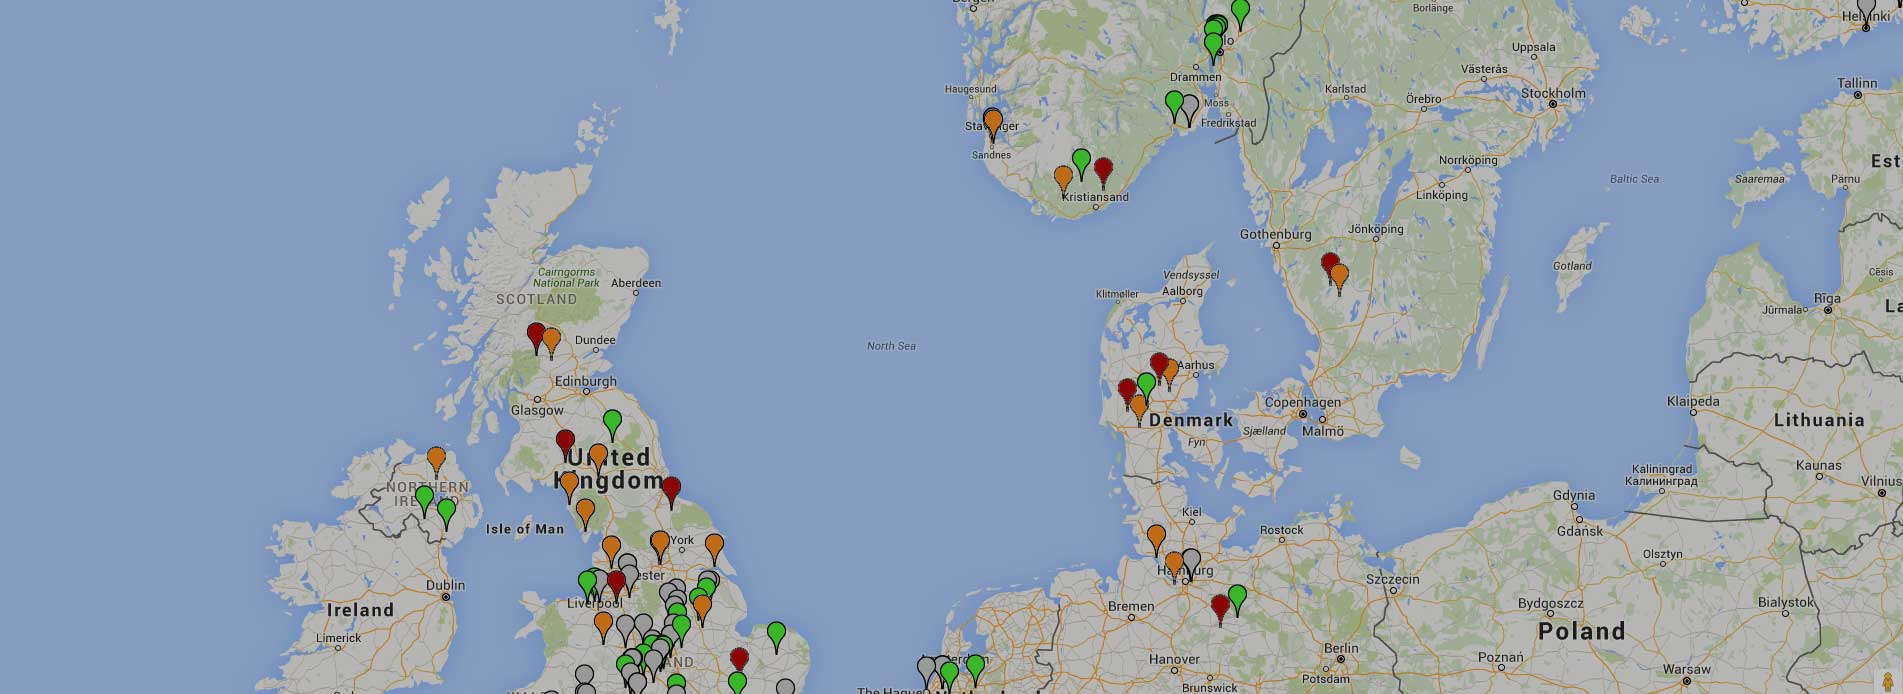 Map-Dashboard-with-black-overlay